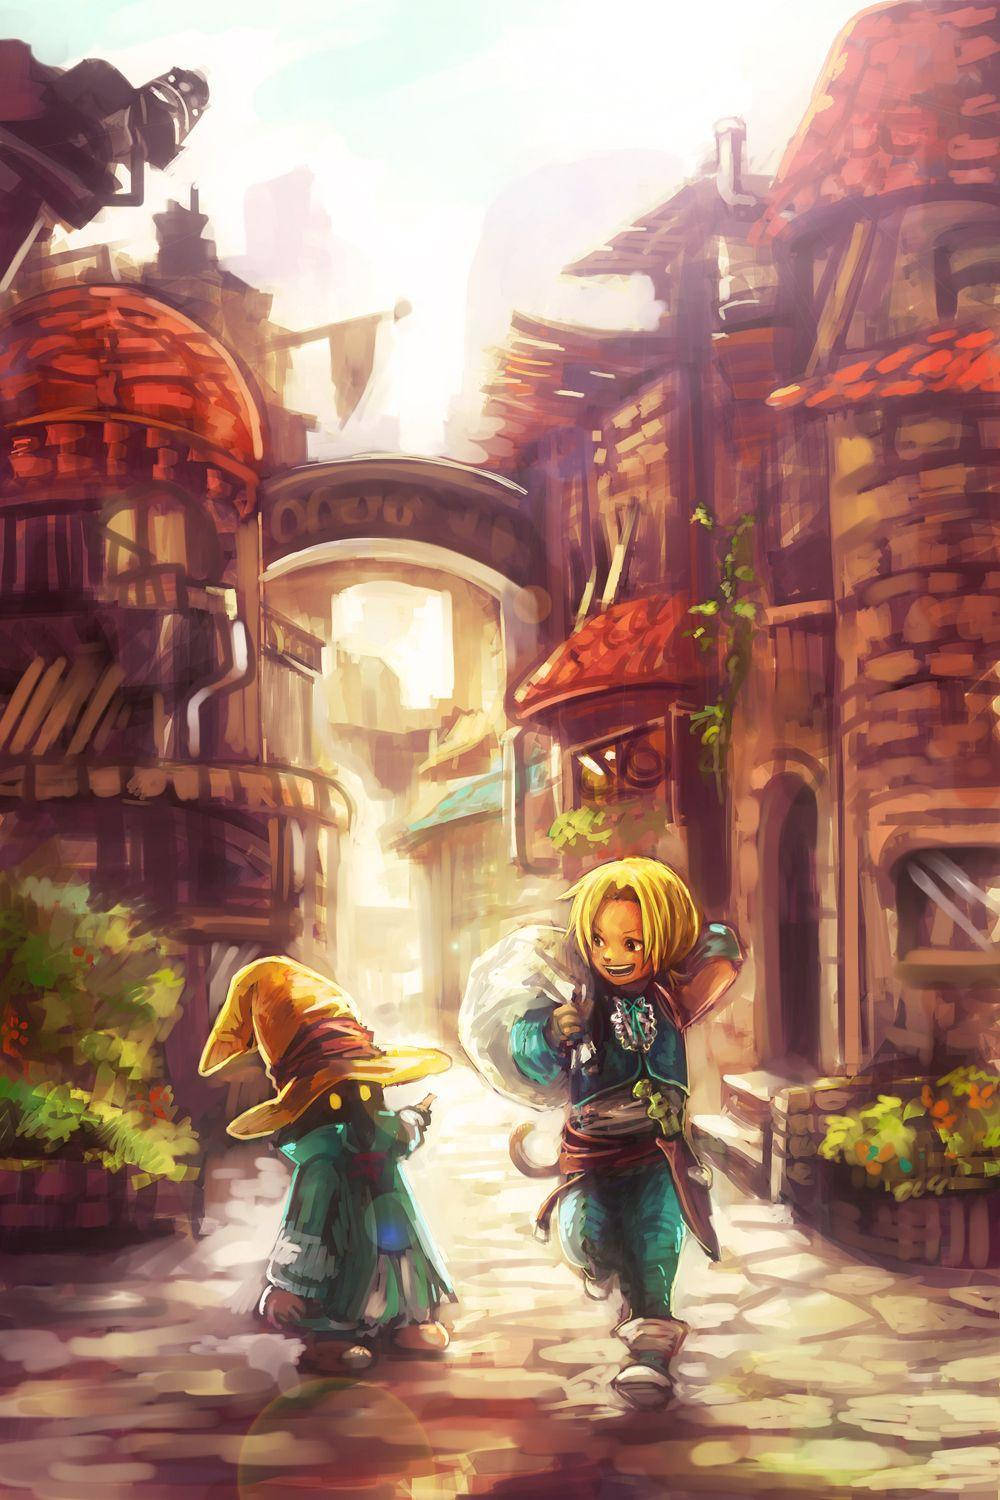 Zidane and Vivi in the best fan art Ive ever seen for Final